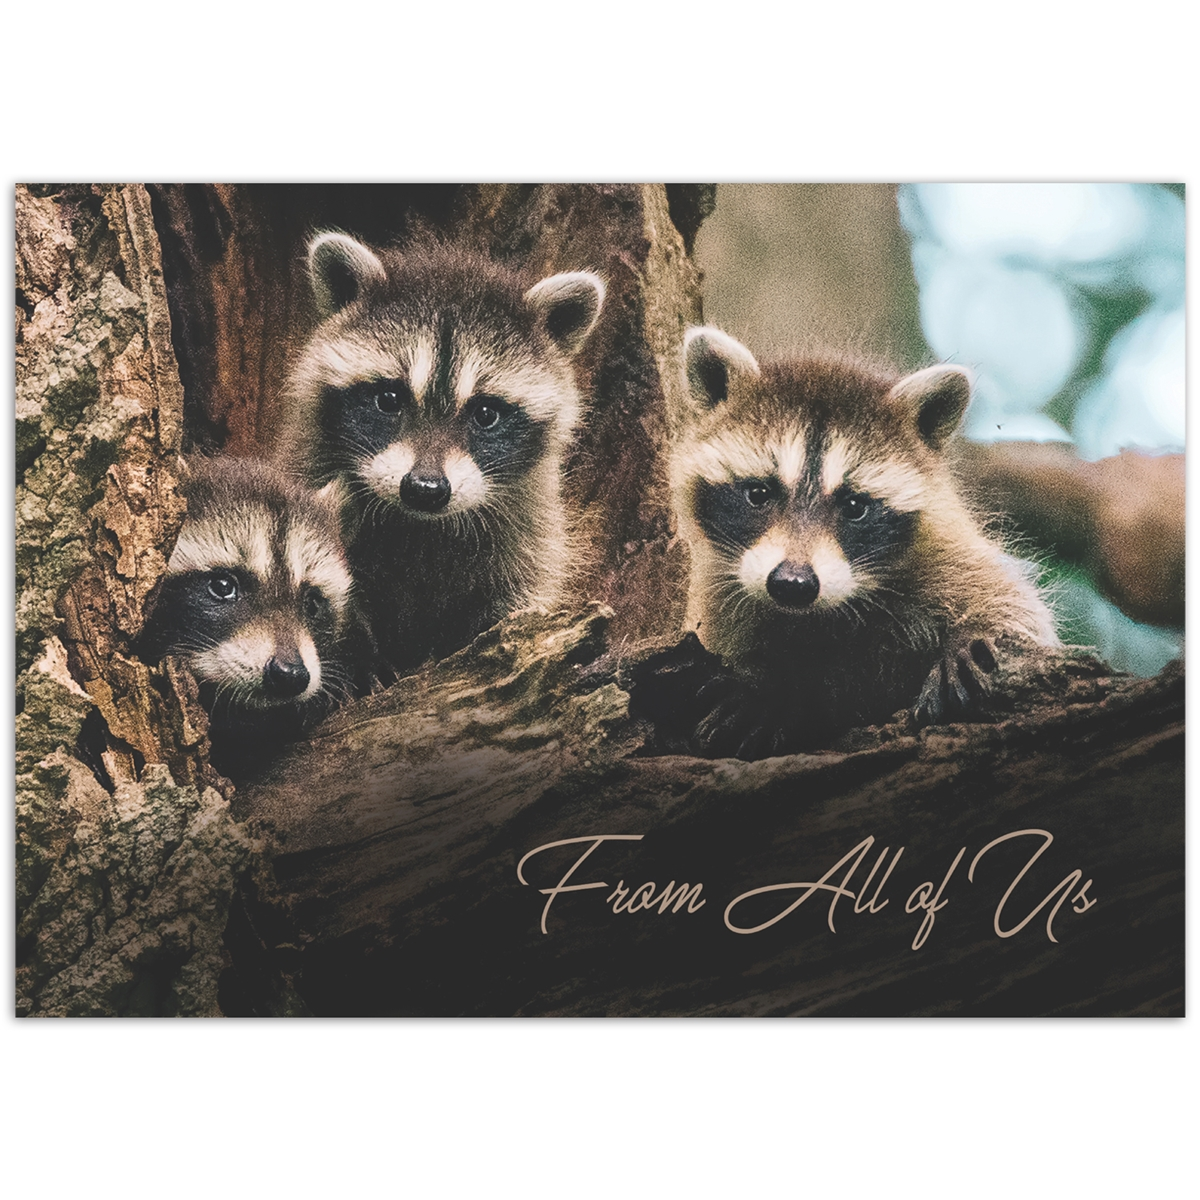 From All of Us Raccoons Card